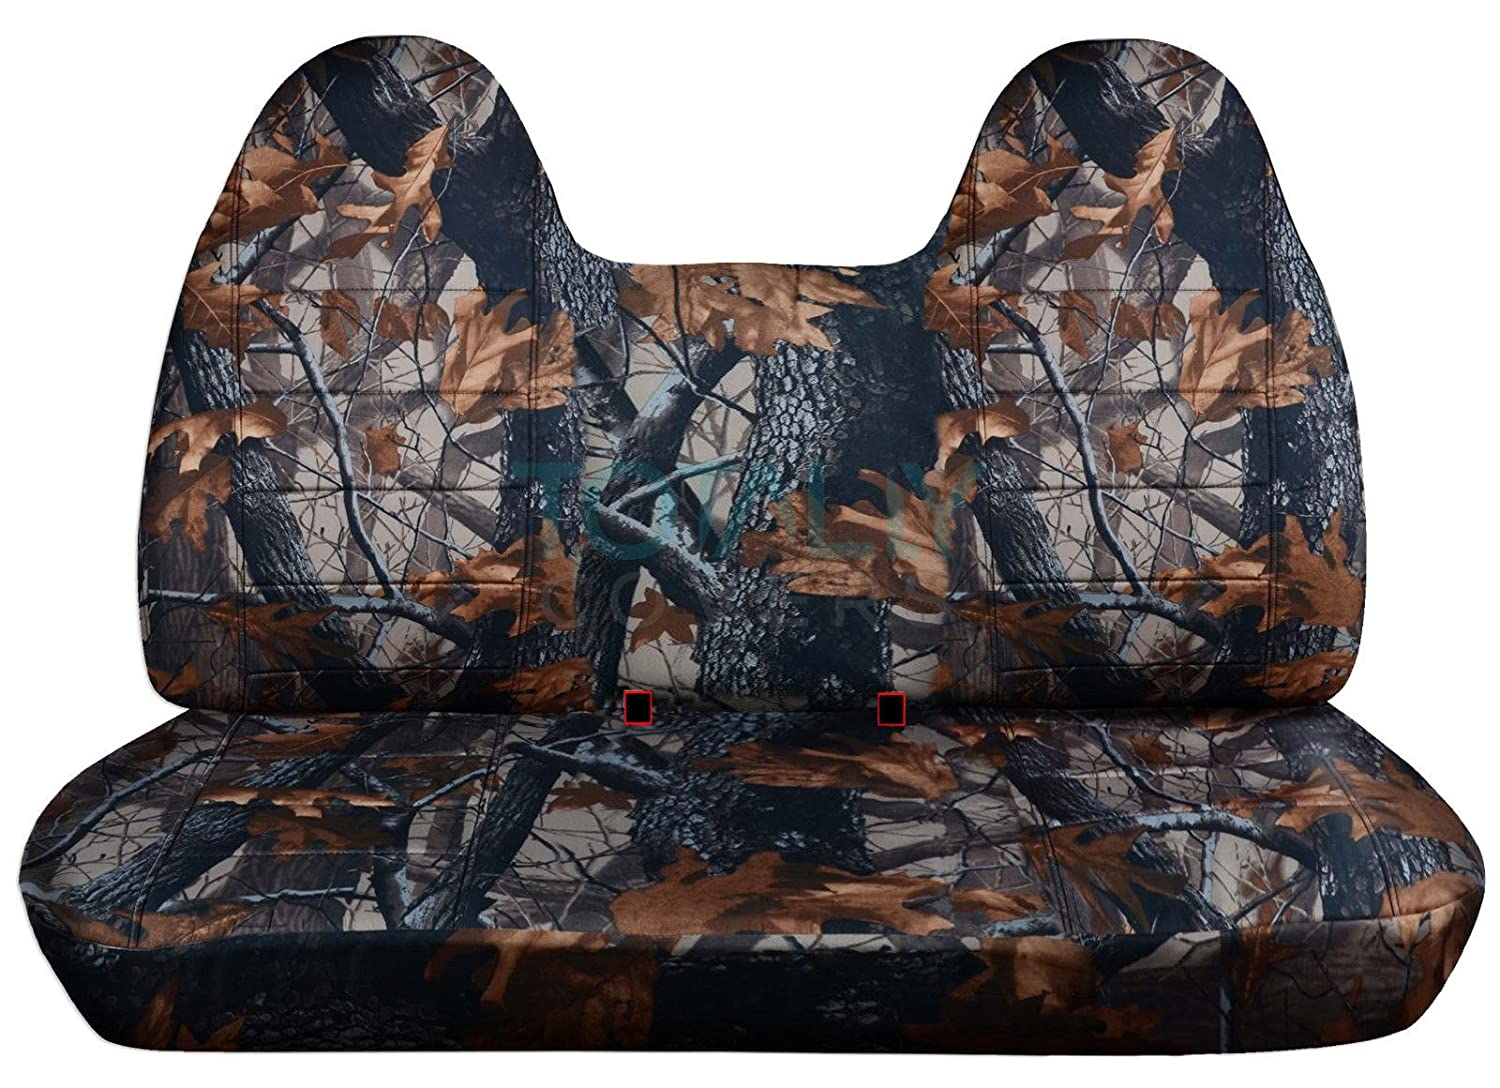 Brown /& Green 1993 1994 1995 1996 1997 F-Series F150 F250 F350 Front//Rear Solid Bench Totally Covers Fits 1992-1998 Ford F-150 F-250 F-350 Camo Truck Seat Covers w//wo Separate Headrests//Armrest